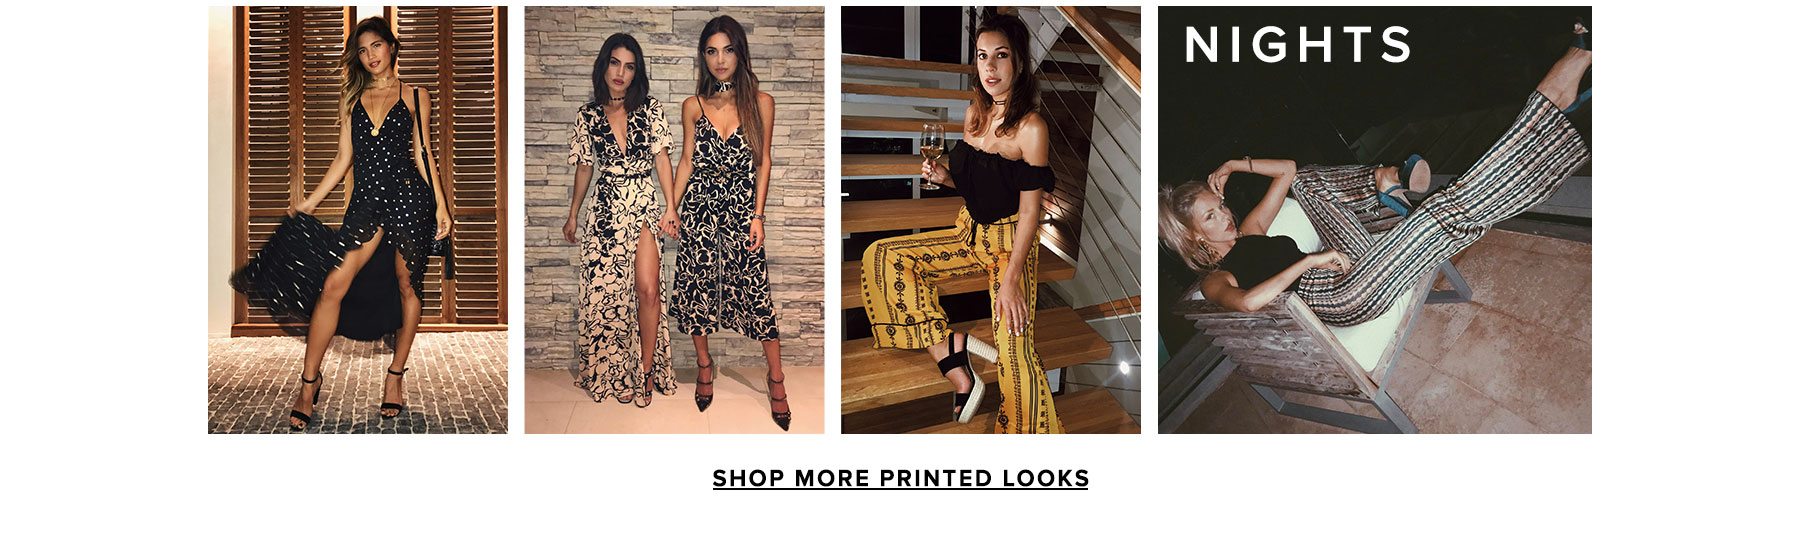 Shop More Printed Looks